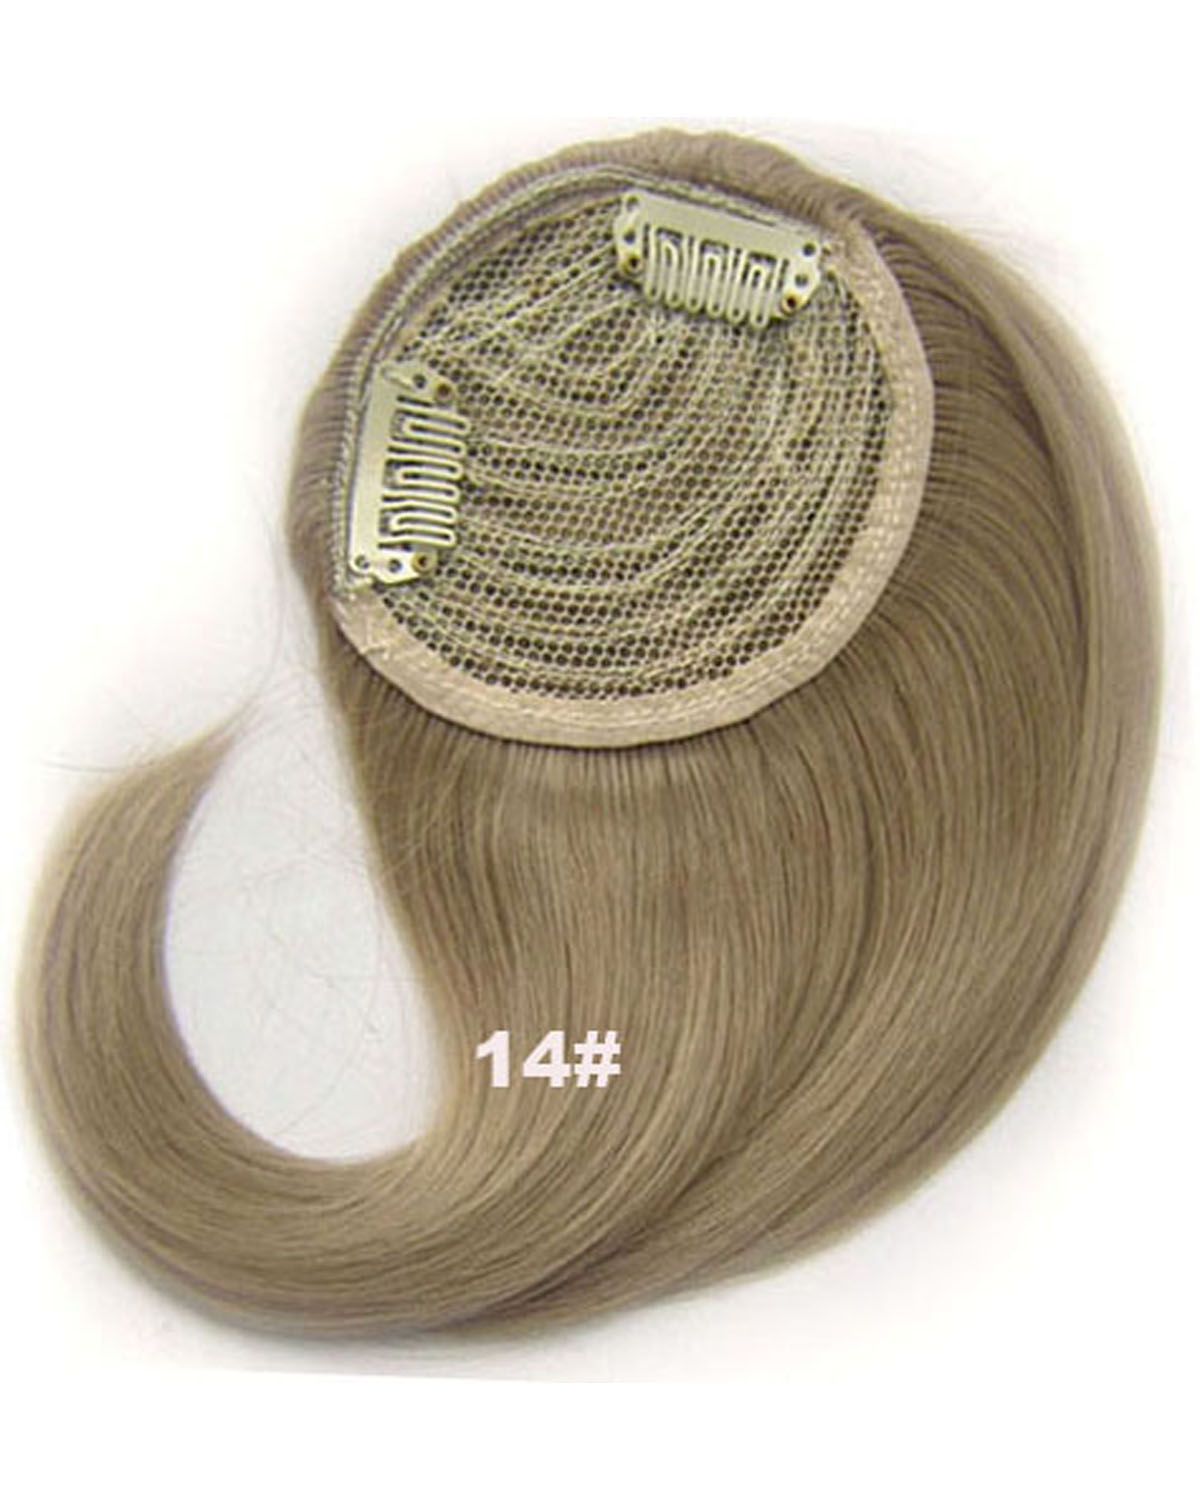 Girls Comfortable Straight Short Bangs Clip in Synthetic Hair Extension Fringe Bangs Hairpiece 14#